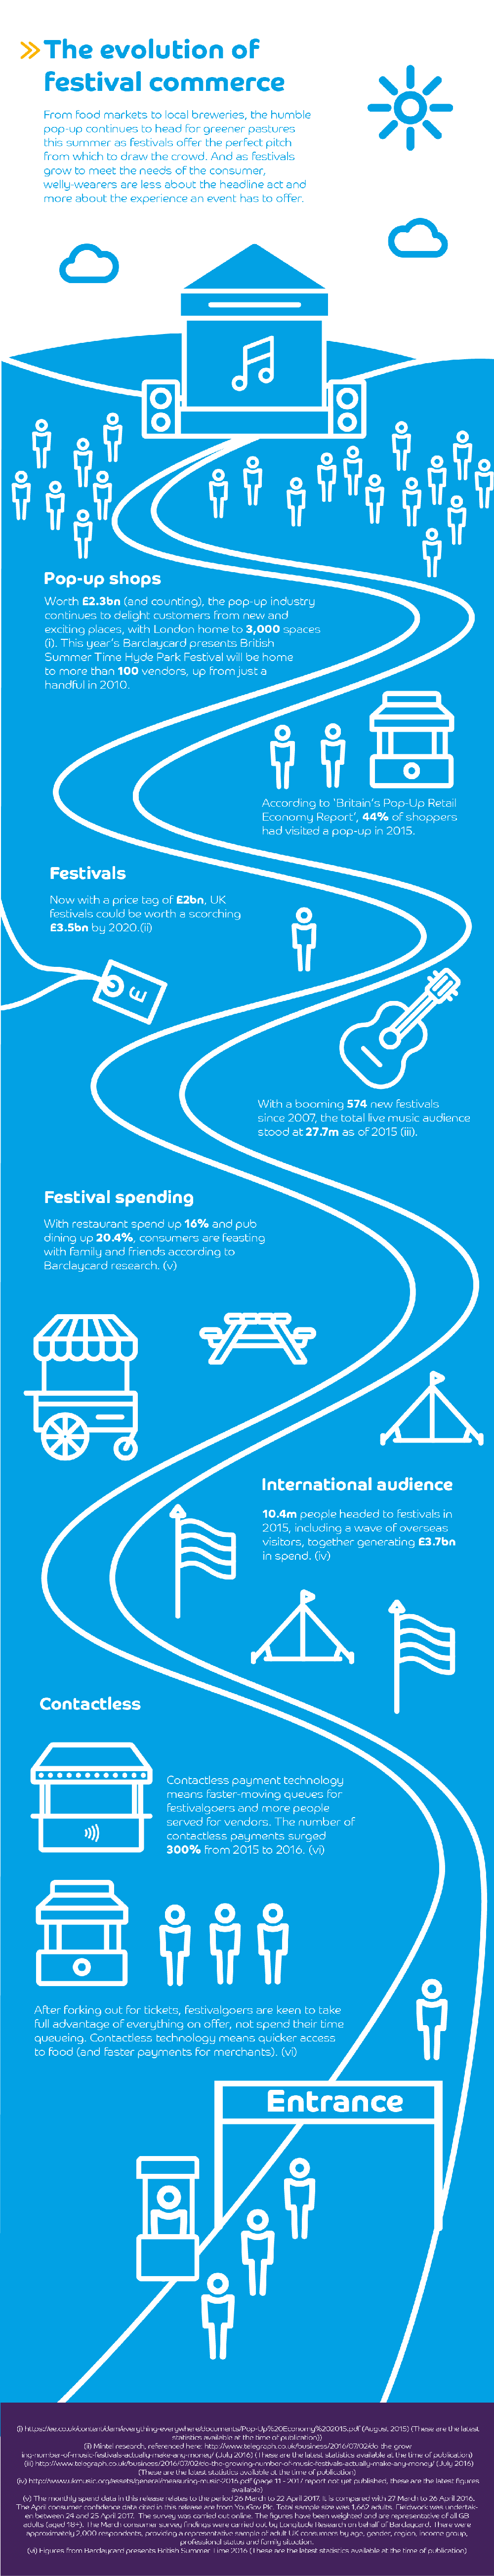 The evolution of festival commerce